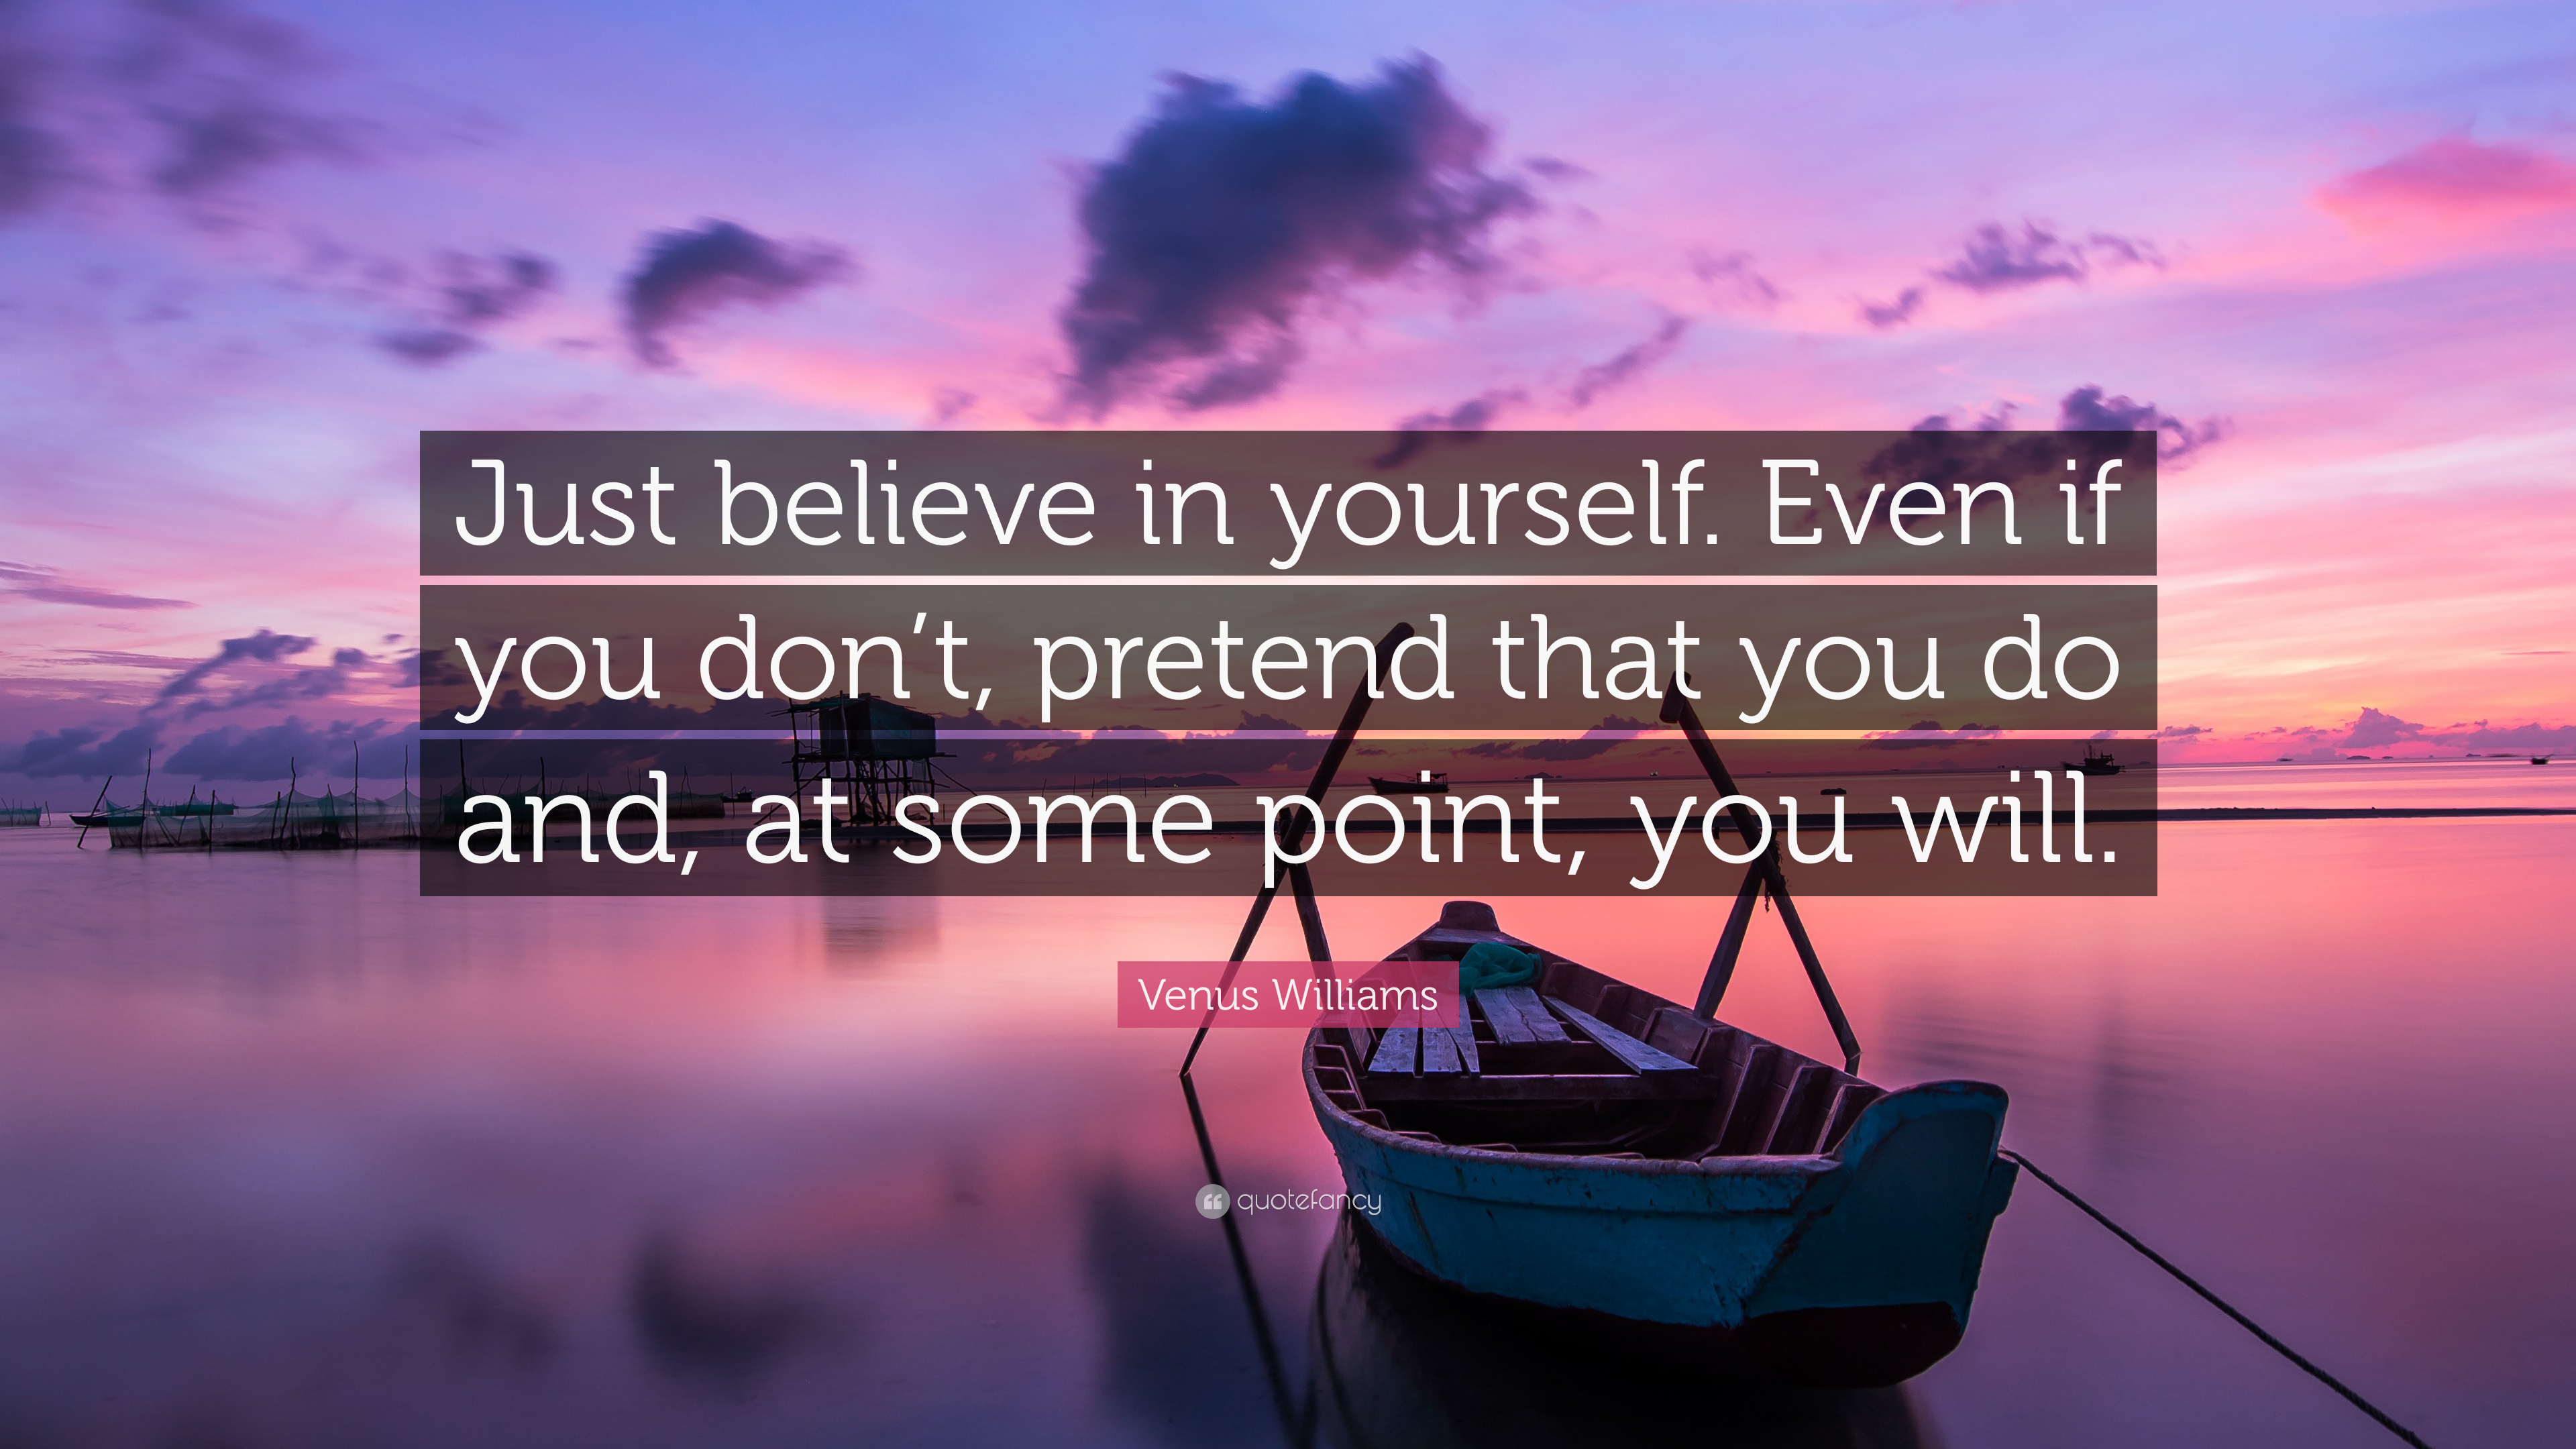 Perfect Venus Williams Quote: U201cJust Believe In Yourself. Even If You Donu0027t